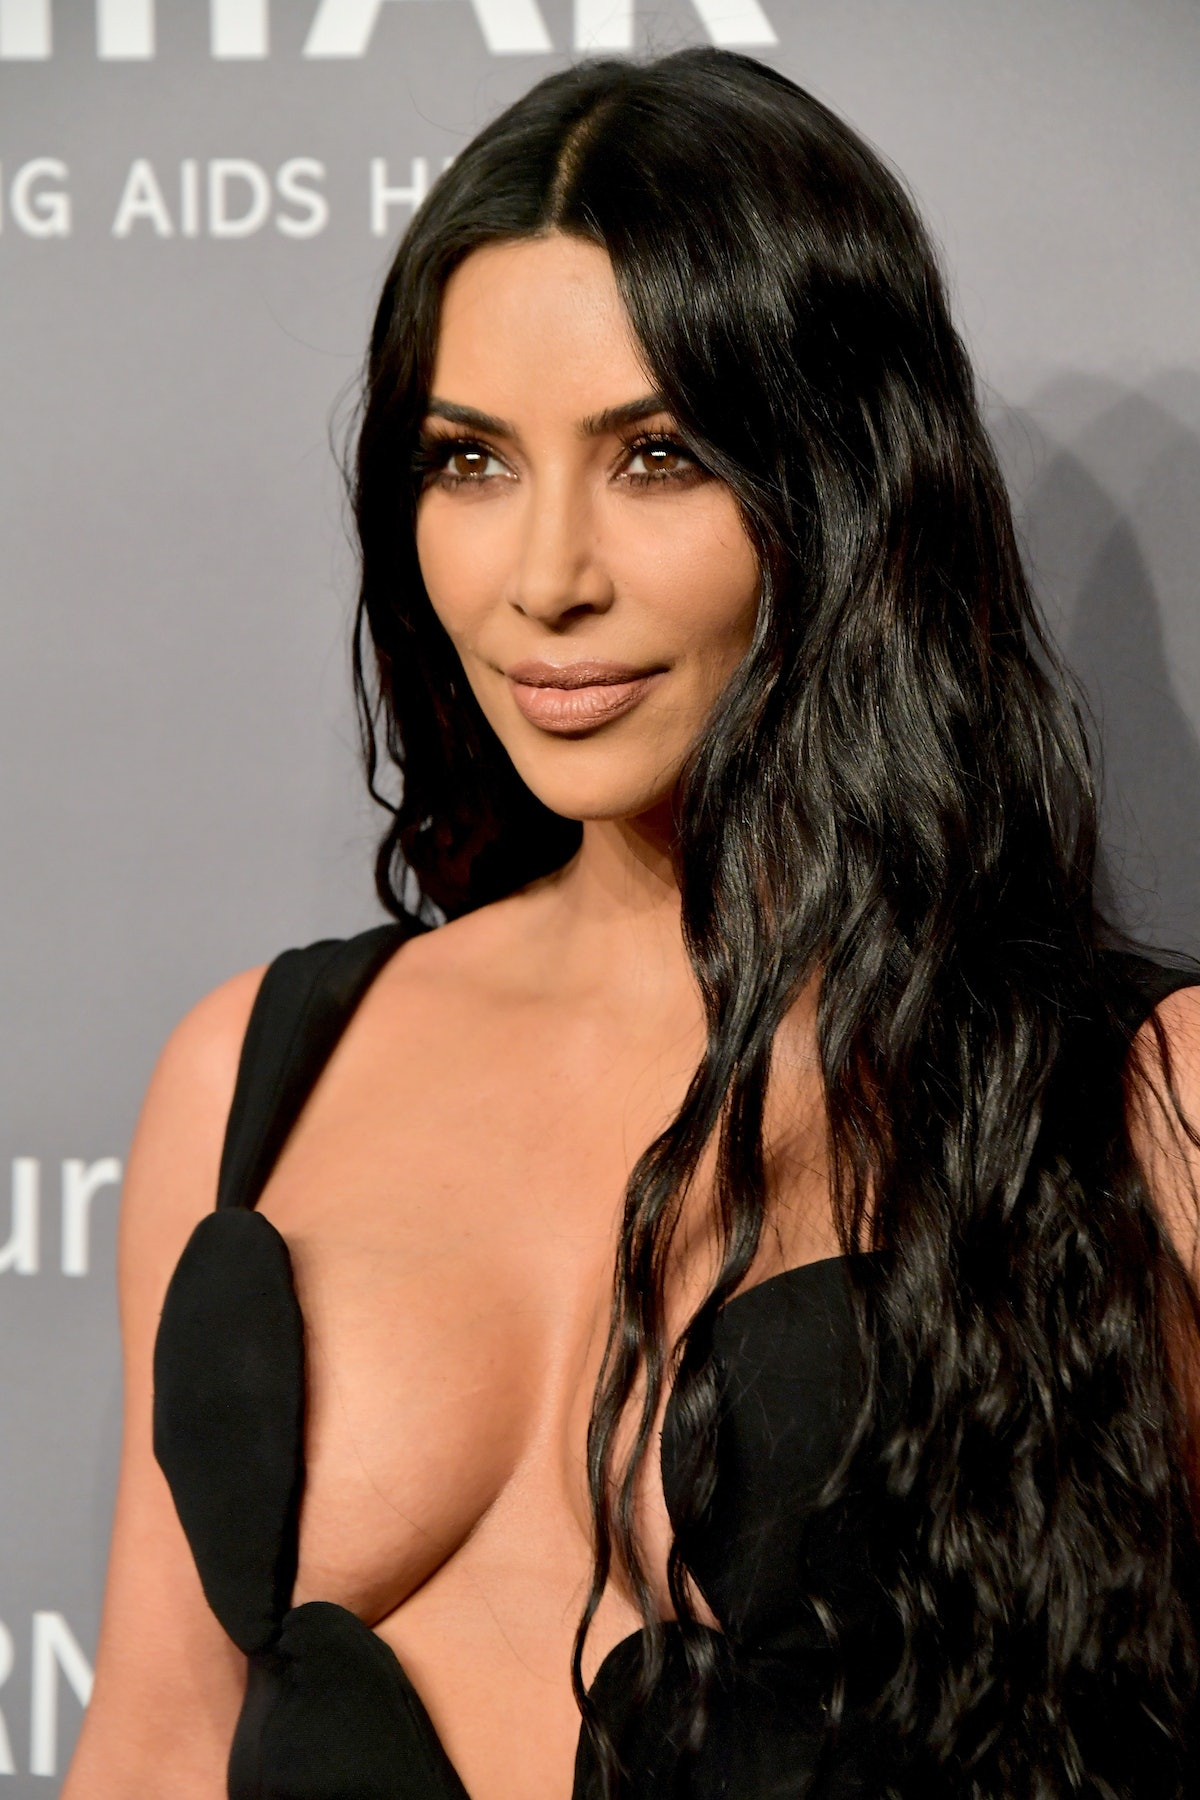 Kim Kardashian's Floor-Length Hair Is Giving Serious Cher Vibes